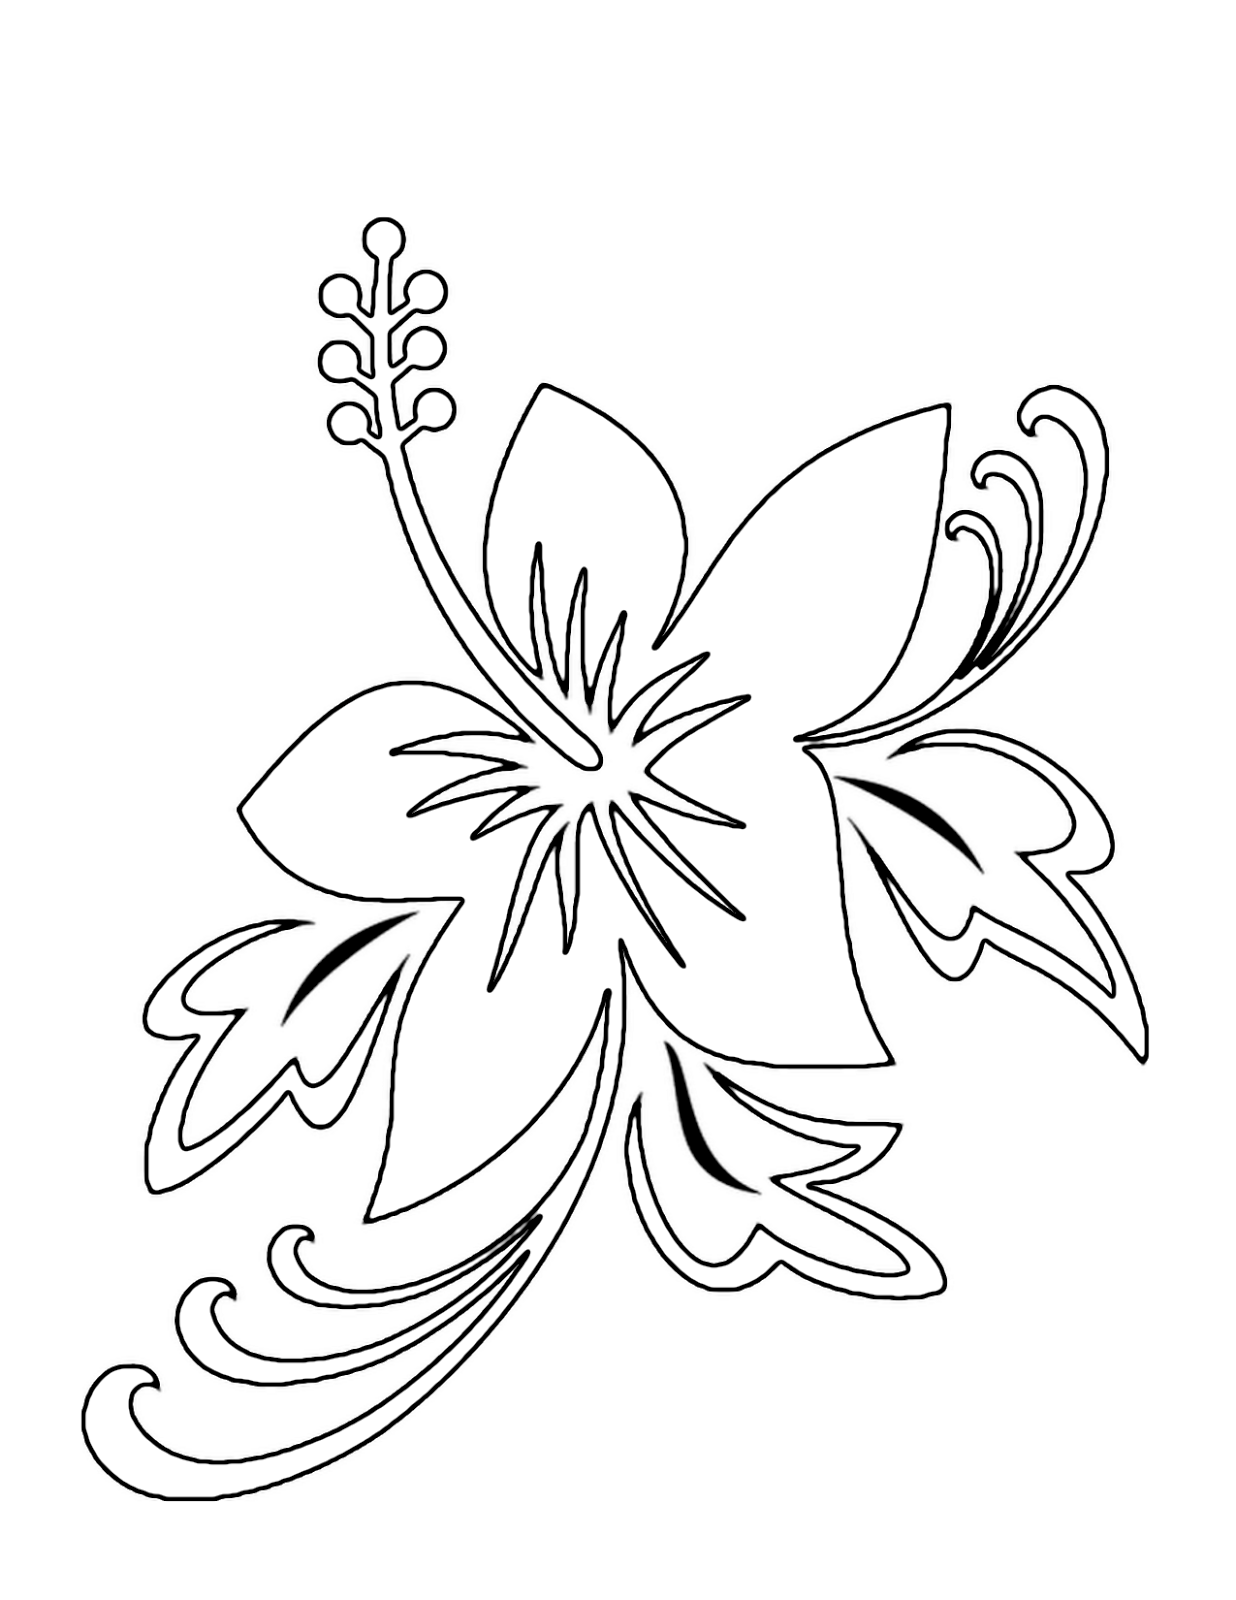 Coloring Pages DLTK's Crafts for Kids - free flower printable coloring pages